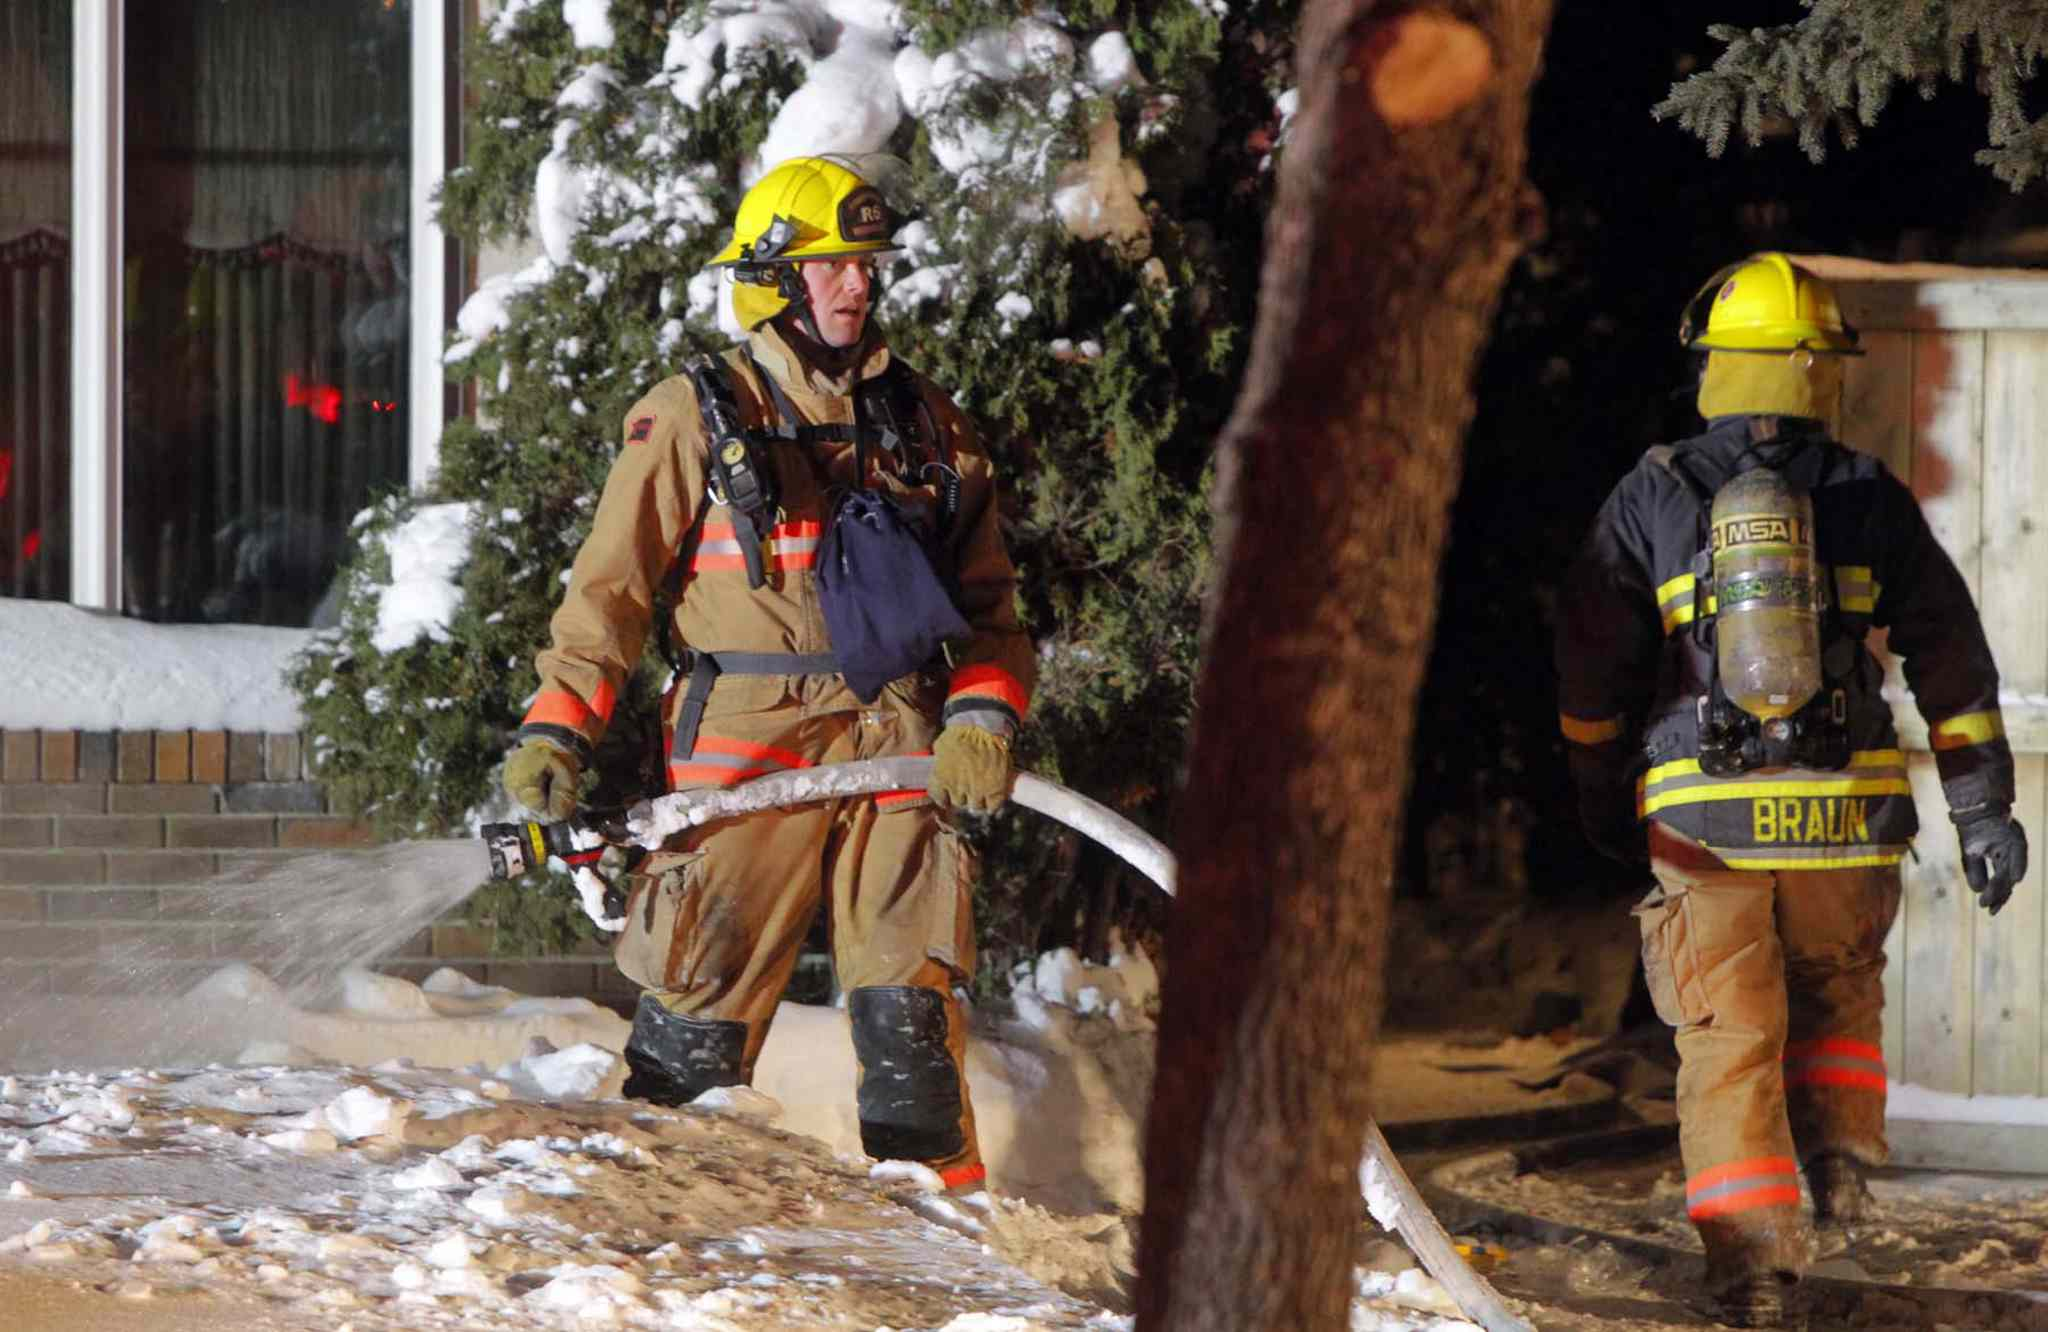 A woman, believed to be in her 70s, died in a Tyndall Avenue blaze Thursday night.